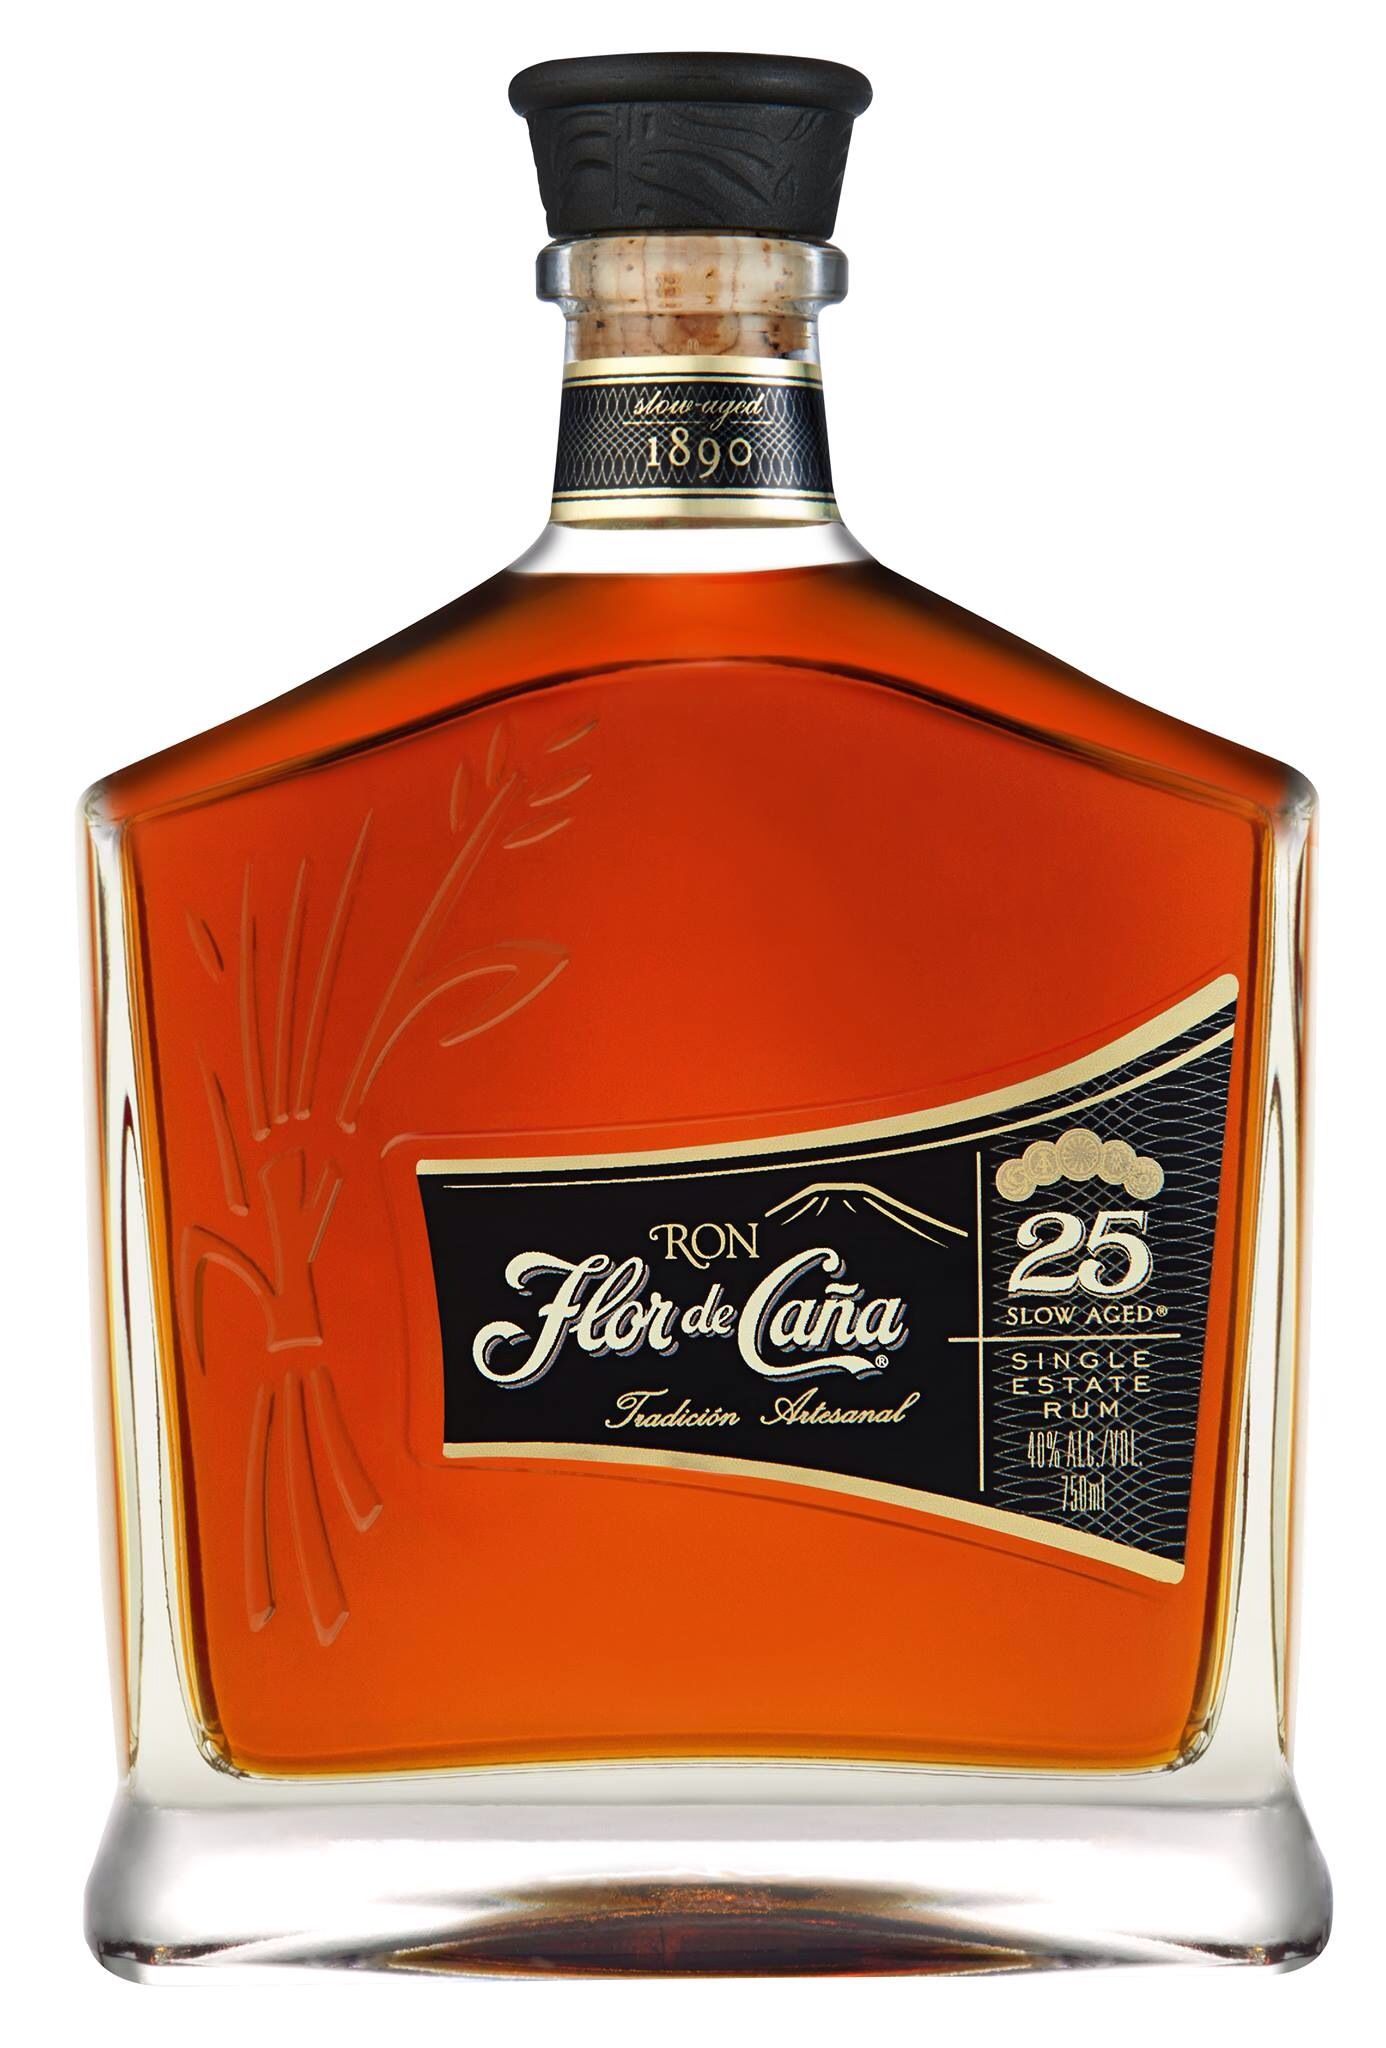 Flor De Cara Rum Rum Fine Wine And Spirits Liquor Bottles